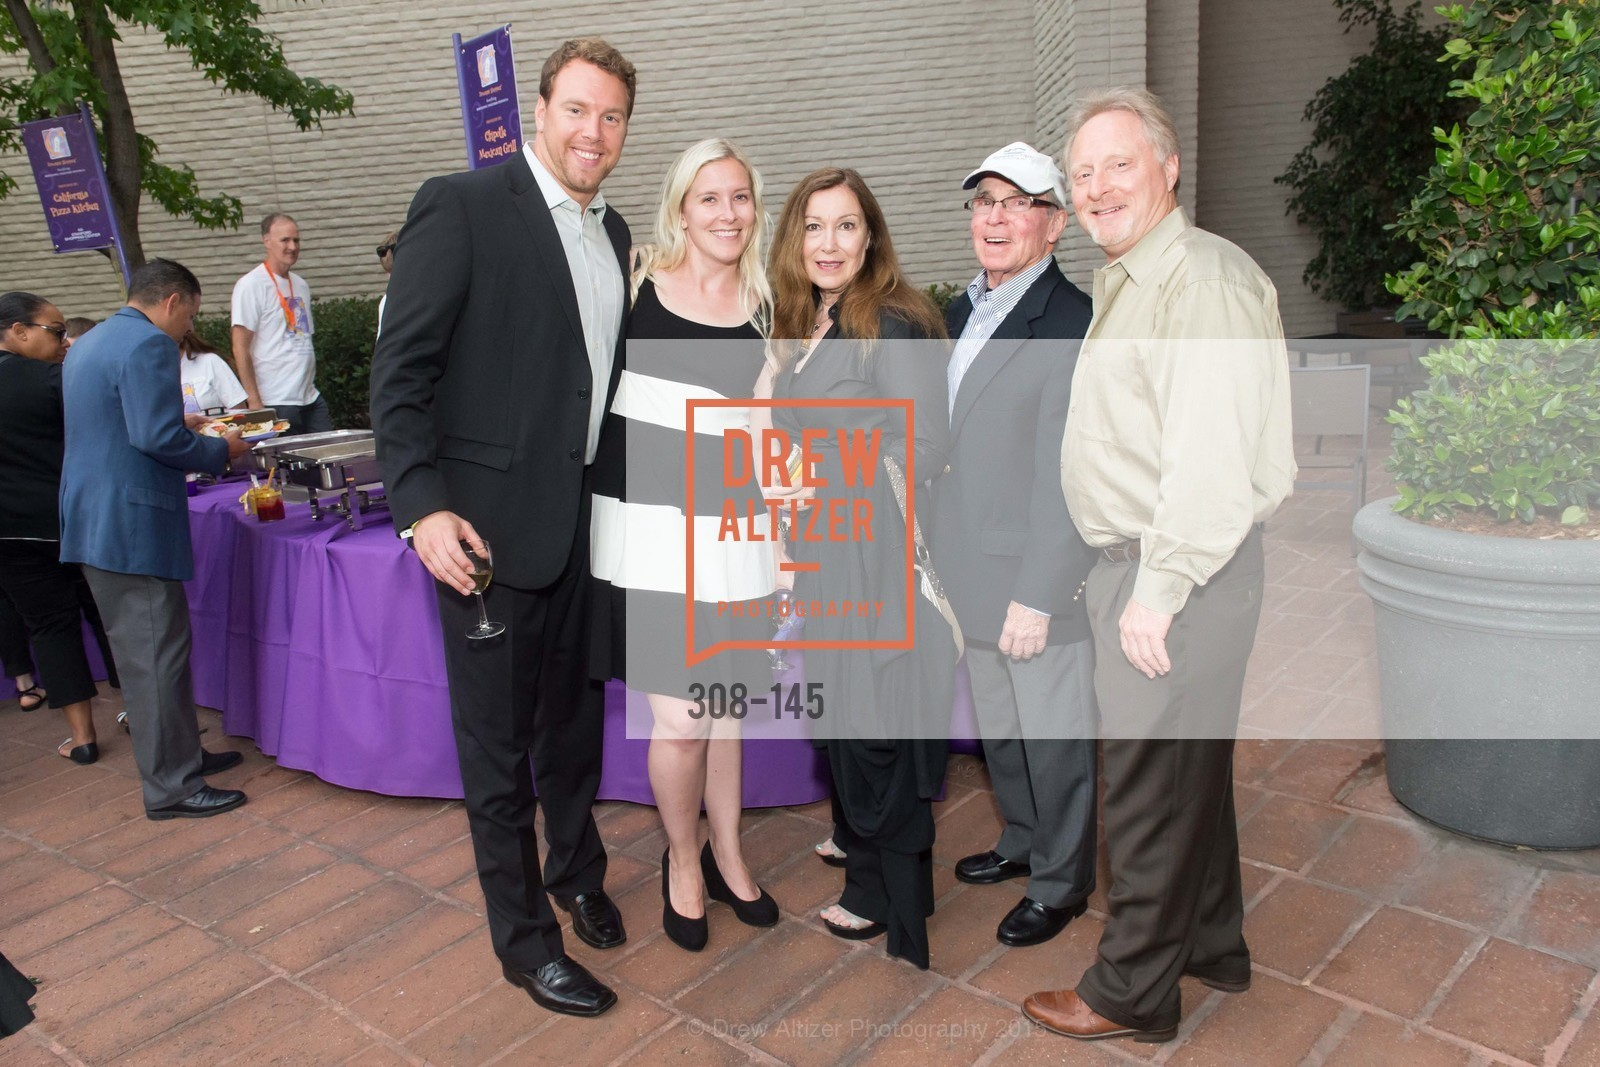 Gavor Sarusi, LauraMae Sarusi, Judy Simes, Dick Kenarney, Ken Schoppet, DREAMS HAPPEN: Playhouse Auction and Gala, Stanford Shopping Center, June 5th, 2015,Drew Altizer, Drew Altizer Photography, full-service agency, private events, San Francisco photographer, photographer california